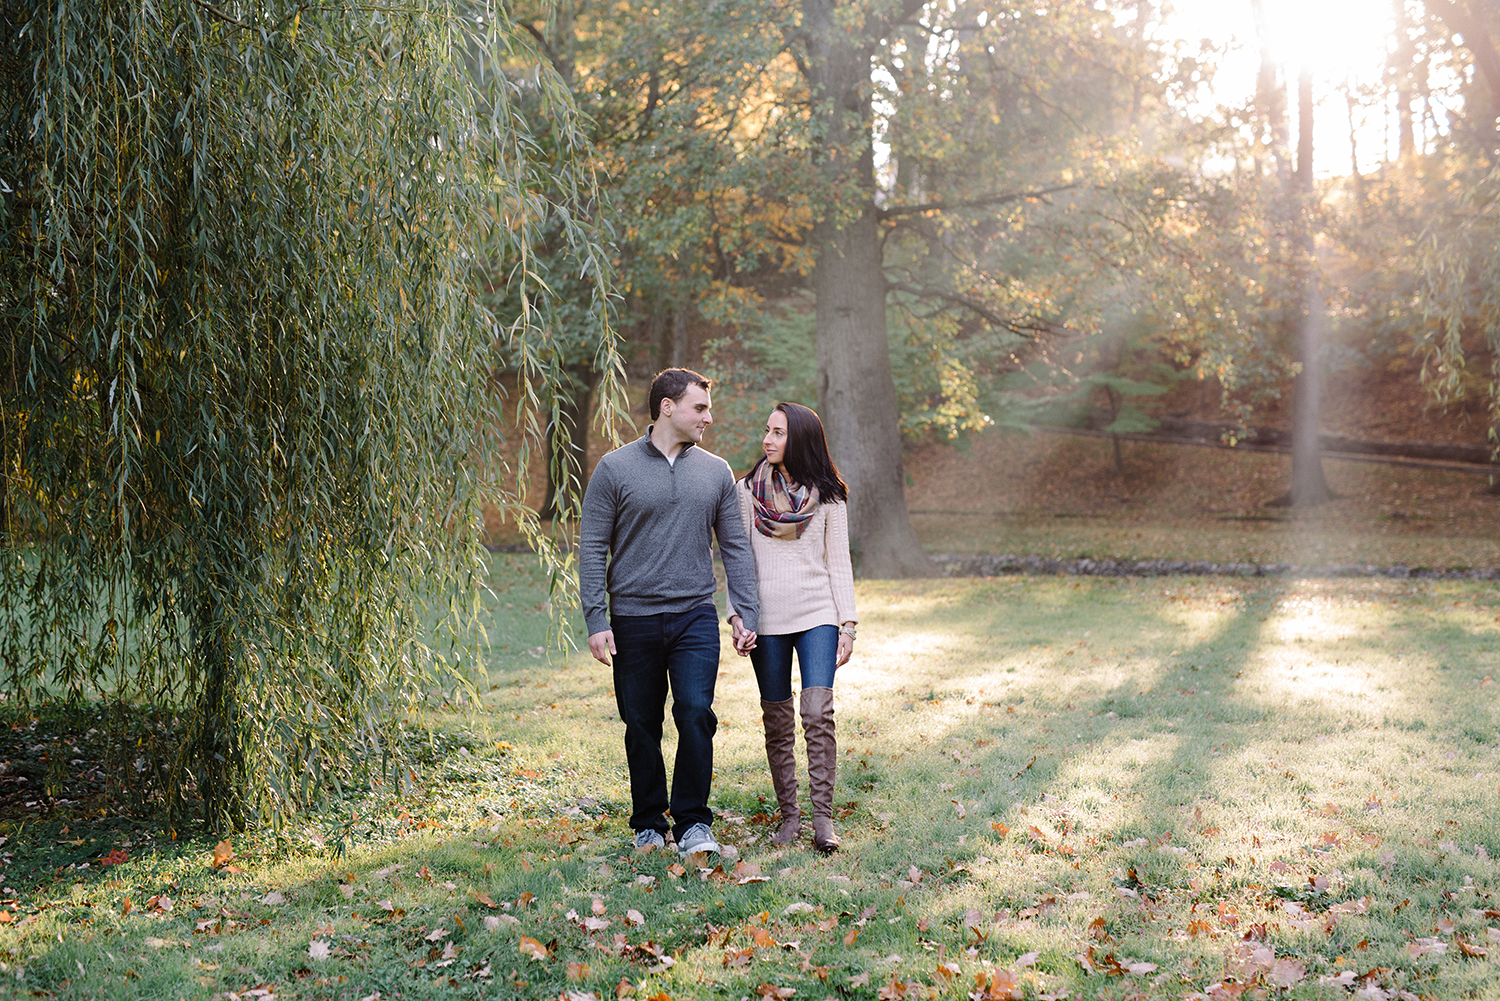 Melissa+Jeff- Local Park Engagement Session with Dog- Booth Park Nutley- New Jersey-Olivia Christina Photo-41.jpg